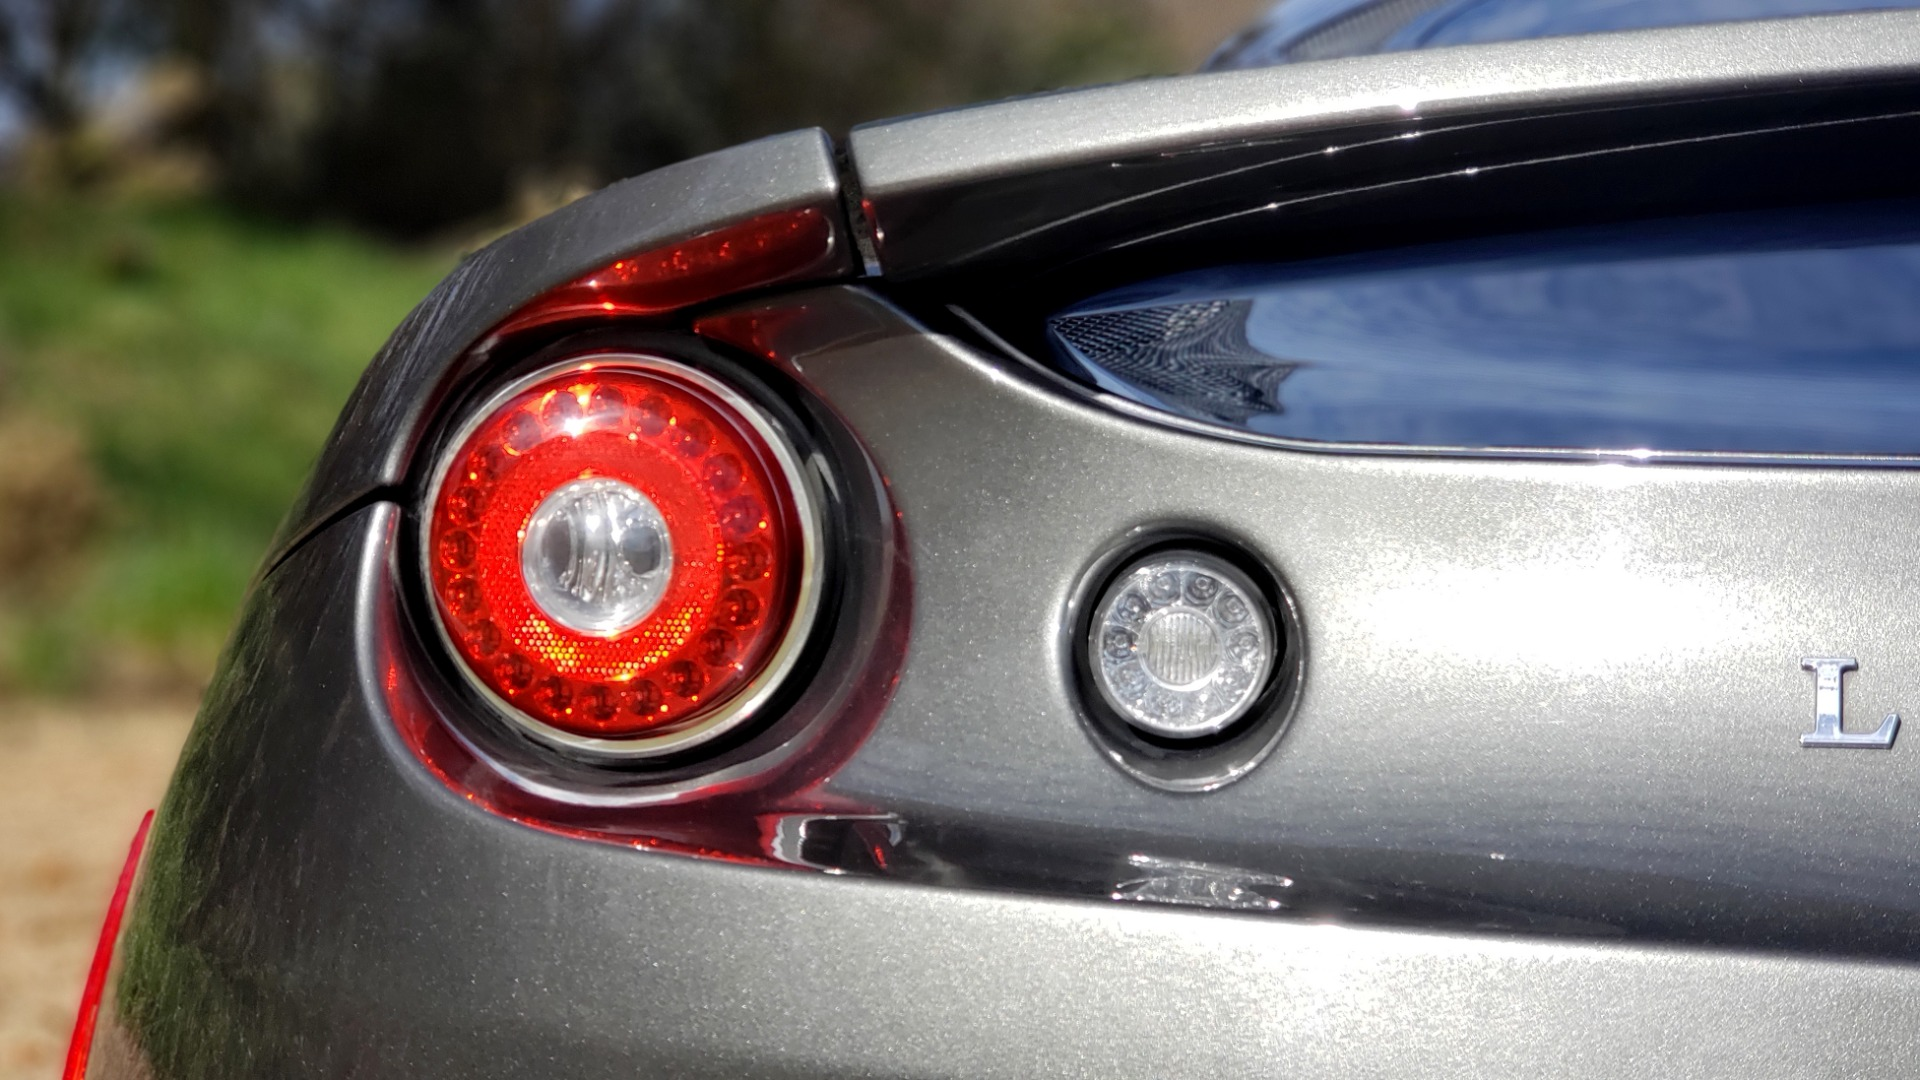 Used 2011 Lotus EVORA S 2+2 / 3.5L V6 / 6-SPD MANUAL / PIONEER / REARVIEW / LOW MILES for sale Sold at Formula Imports in Charlotte NC 28227 14